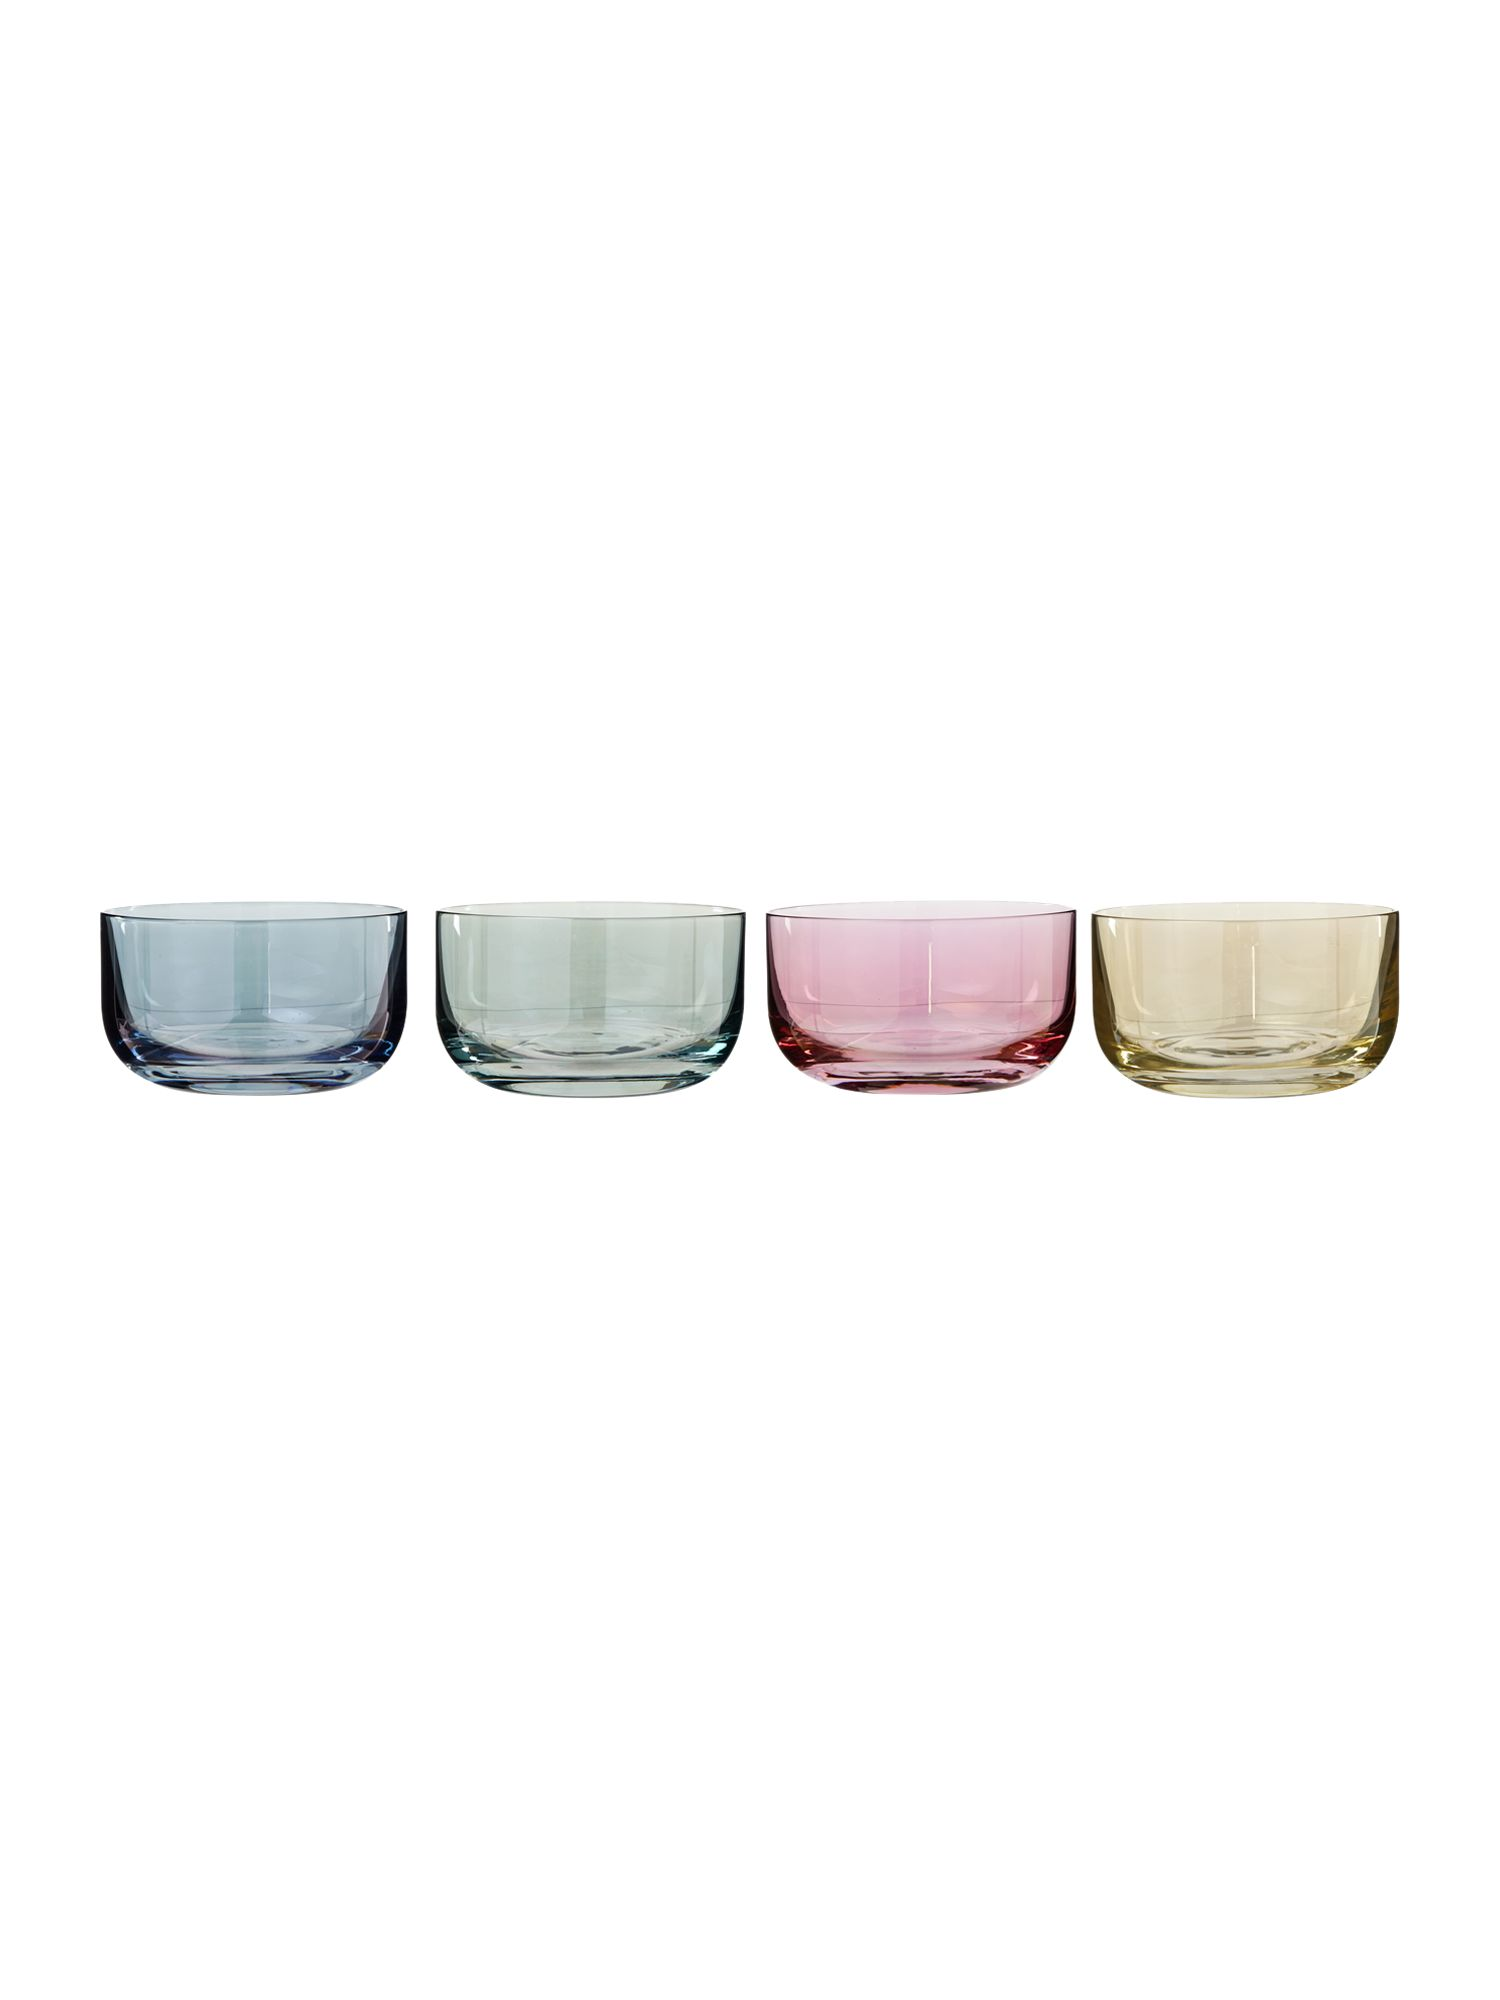 Polka Pastel bowl, set of 4